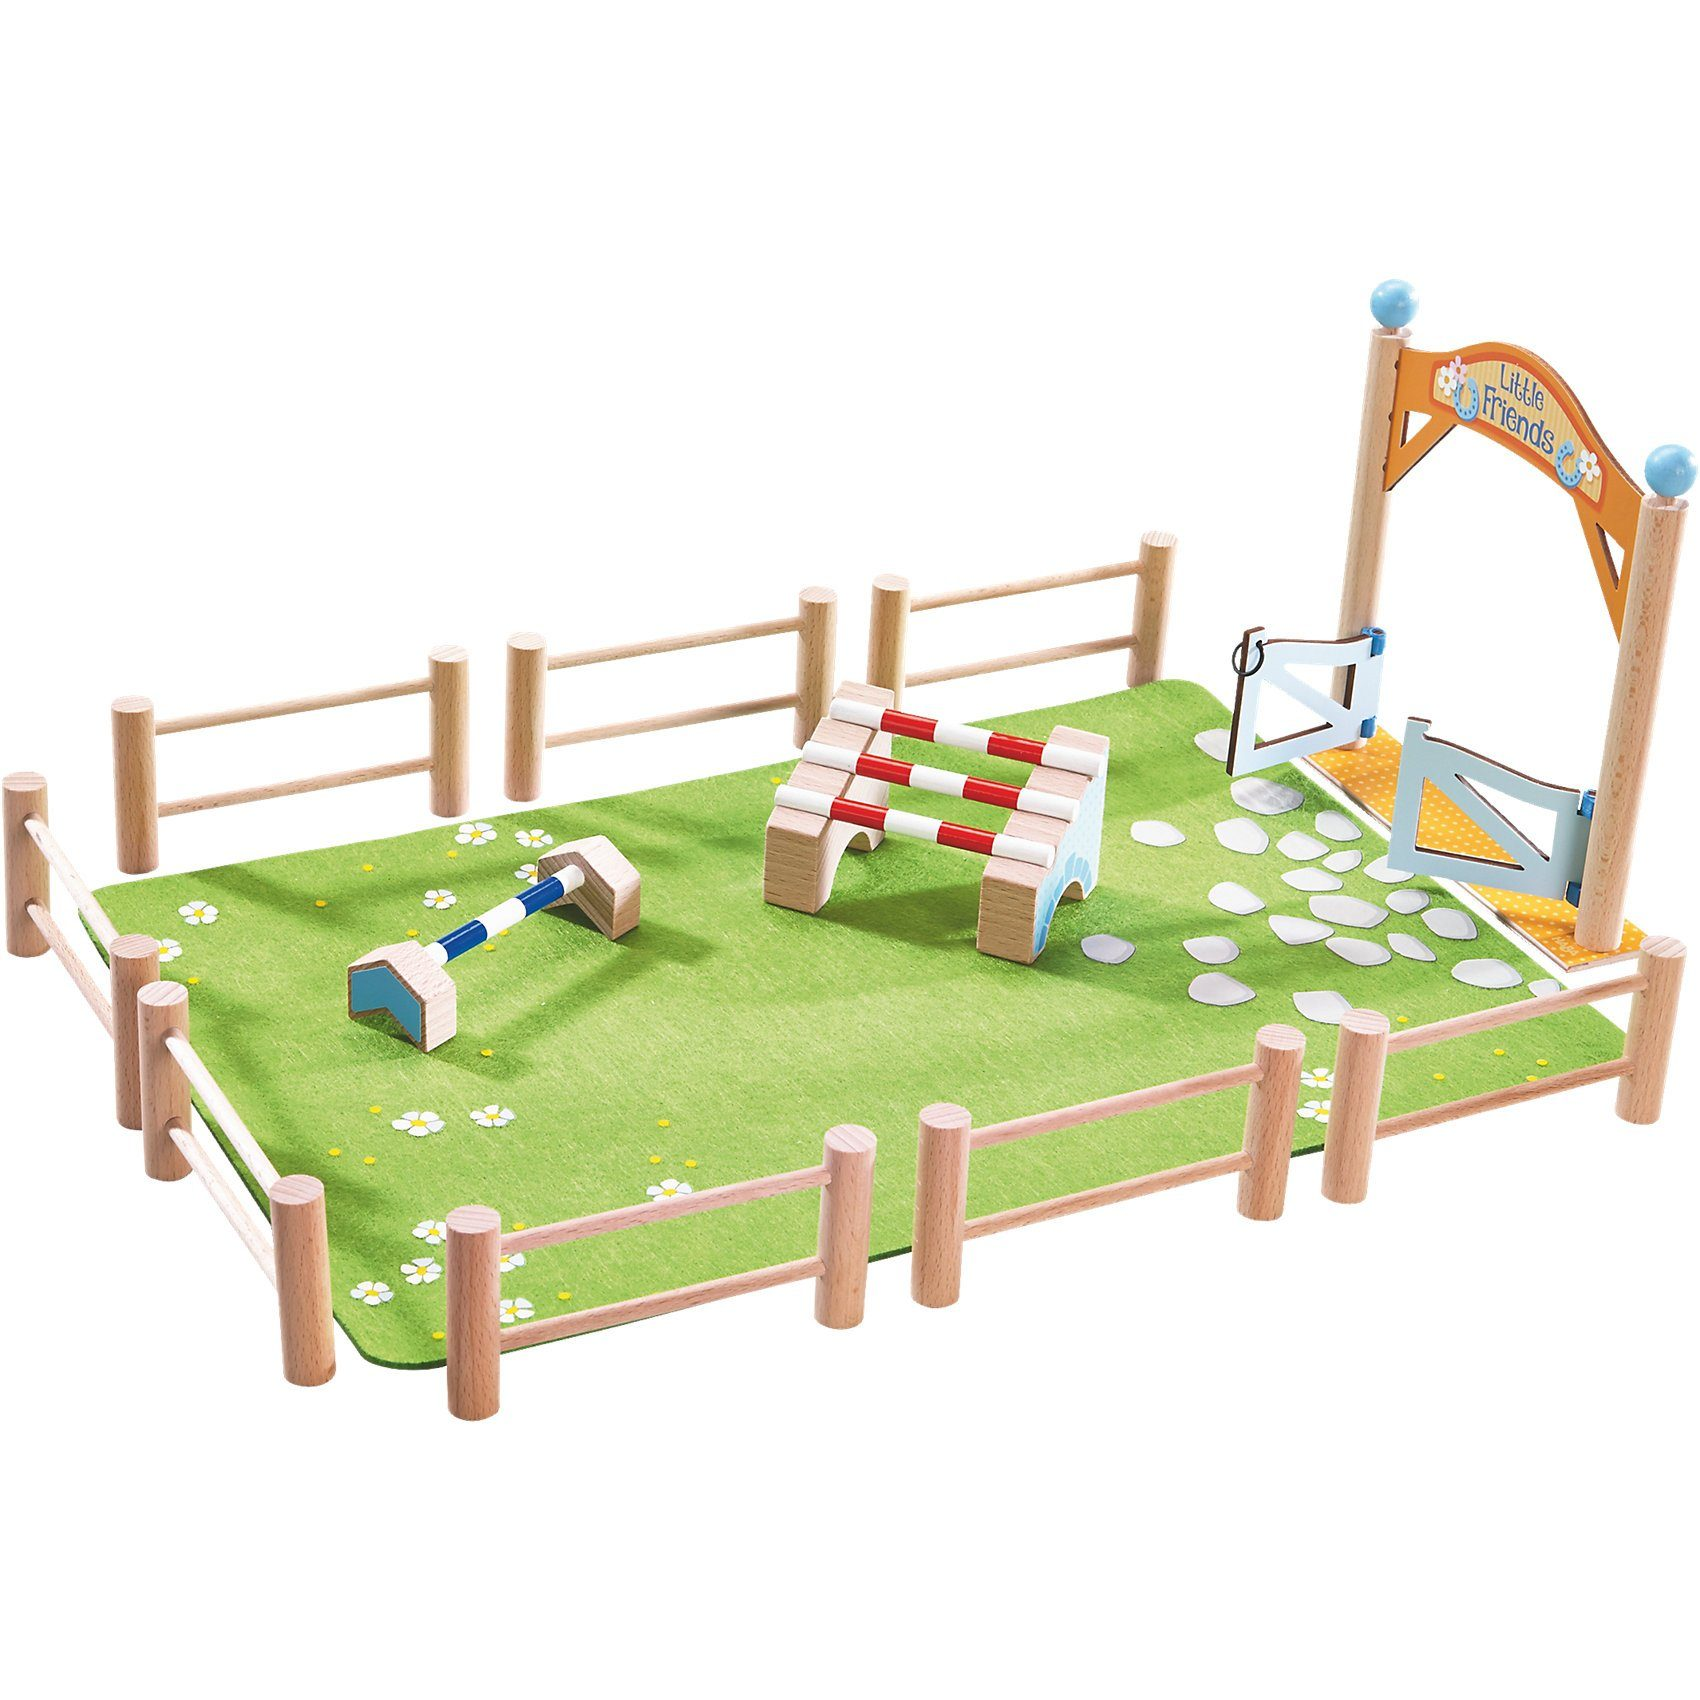 Haba 302166 Little Friends Pferdewelt Springturnier